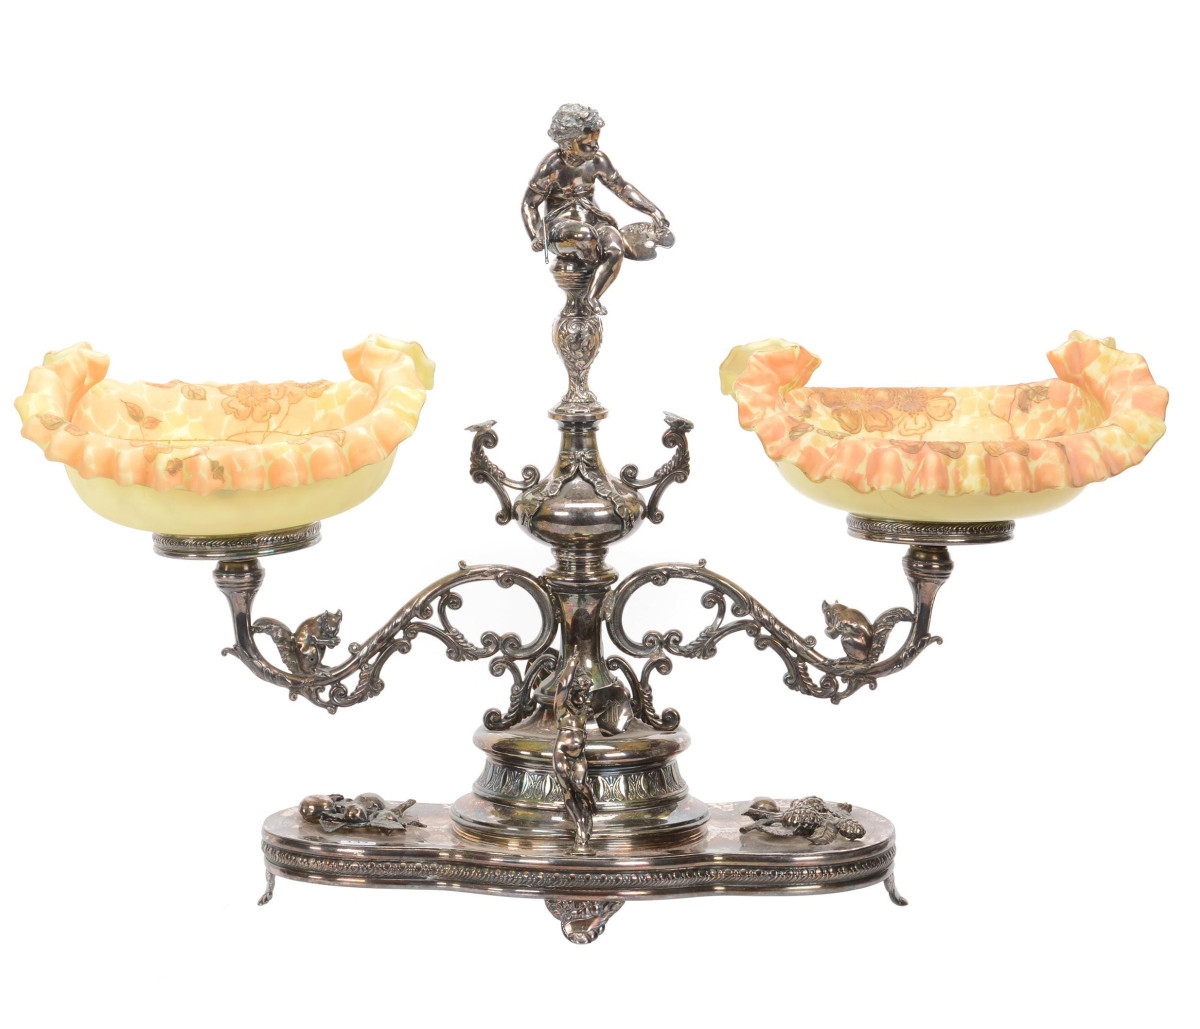 """Double bride's  basket with Crown Milano art glass bowls with enamel floral decoration, mounted on elaborate Pairpoint #2208 silverplate frame that features cherubs, squirrels, fruit branches and butterfly highlights, 20-1/2"""" x 28-1/2"""", total weight of over 16 pounds; $6,500."""